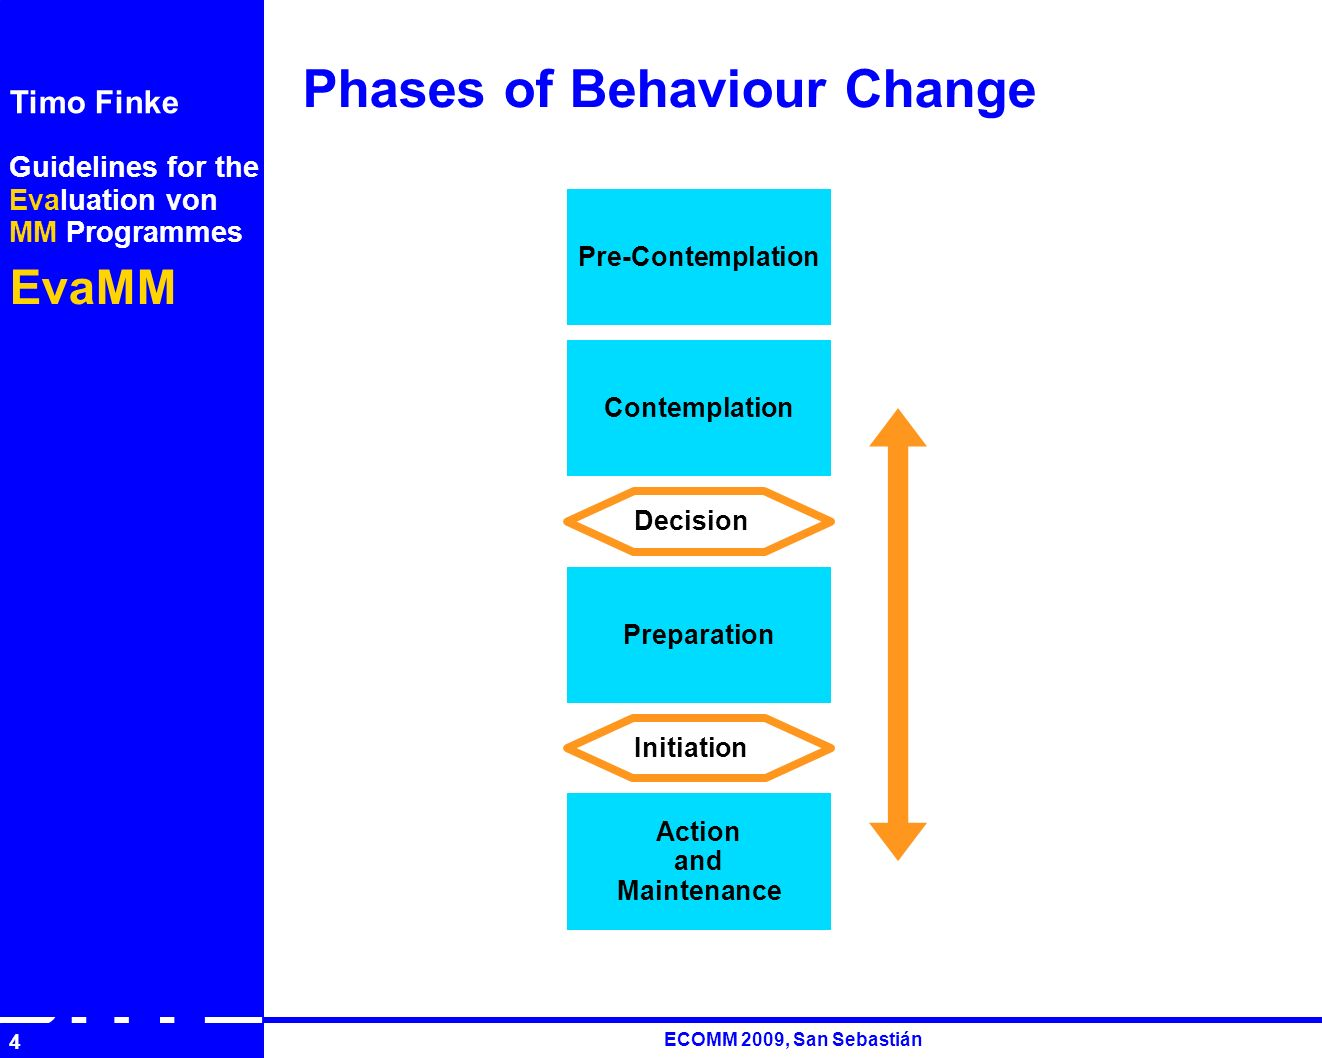 Guidelines for the Evaluation von MM Programmes EvaMM Timo Finke RUTH ECOMM 2009, San Sebastián 4 Phases of Behaviour Change Pre-Contemplation Contemplation Preparation Action and Maintenance Decision Initiation